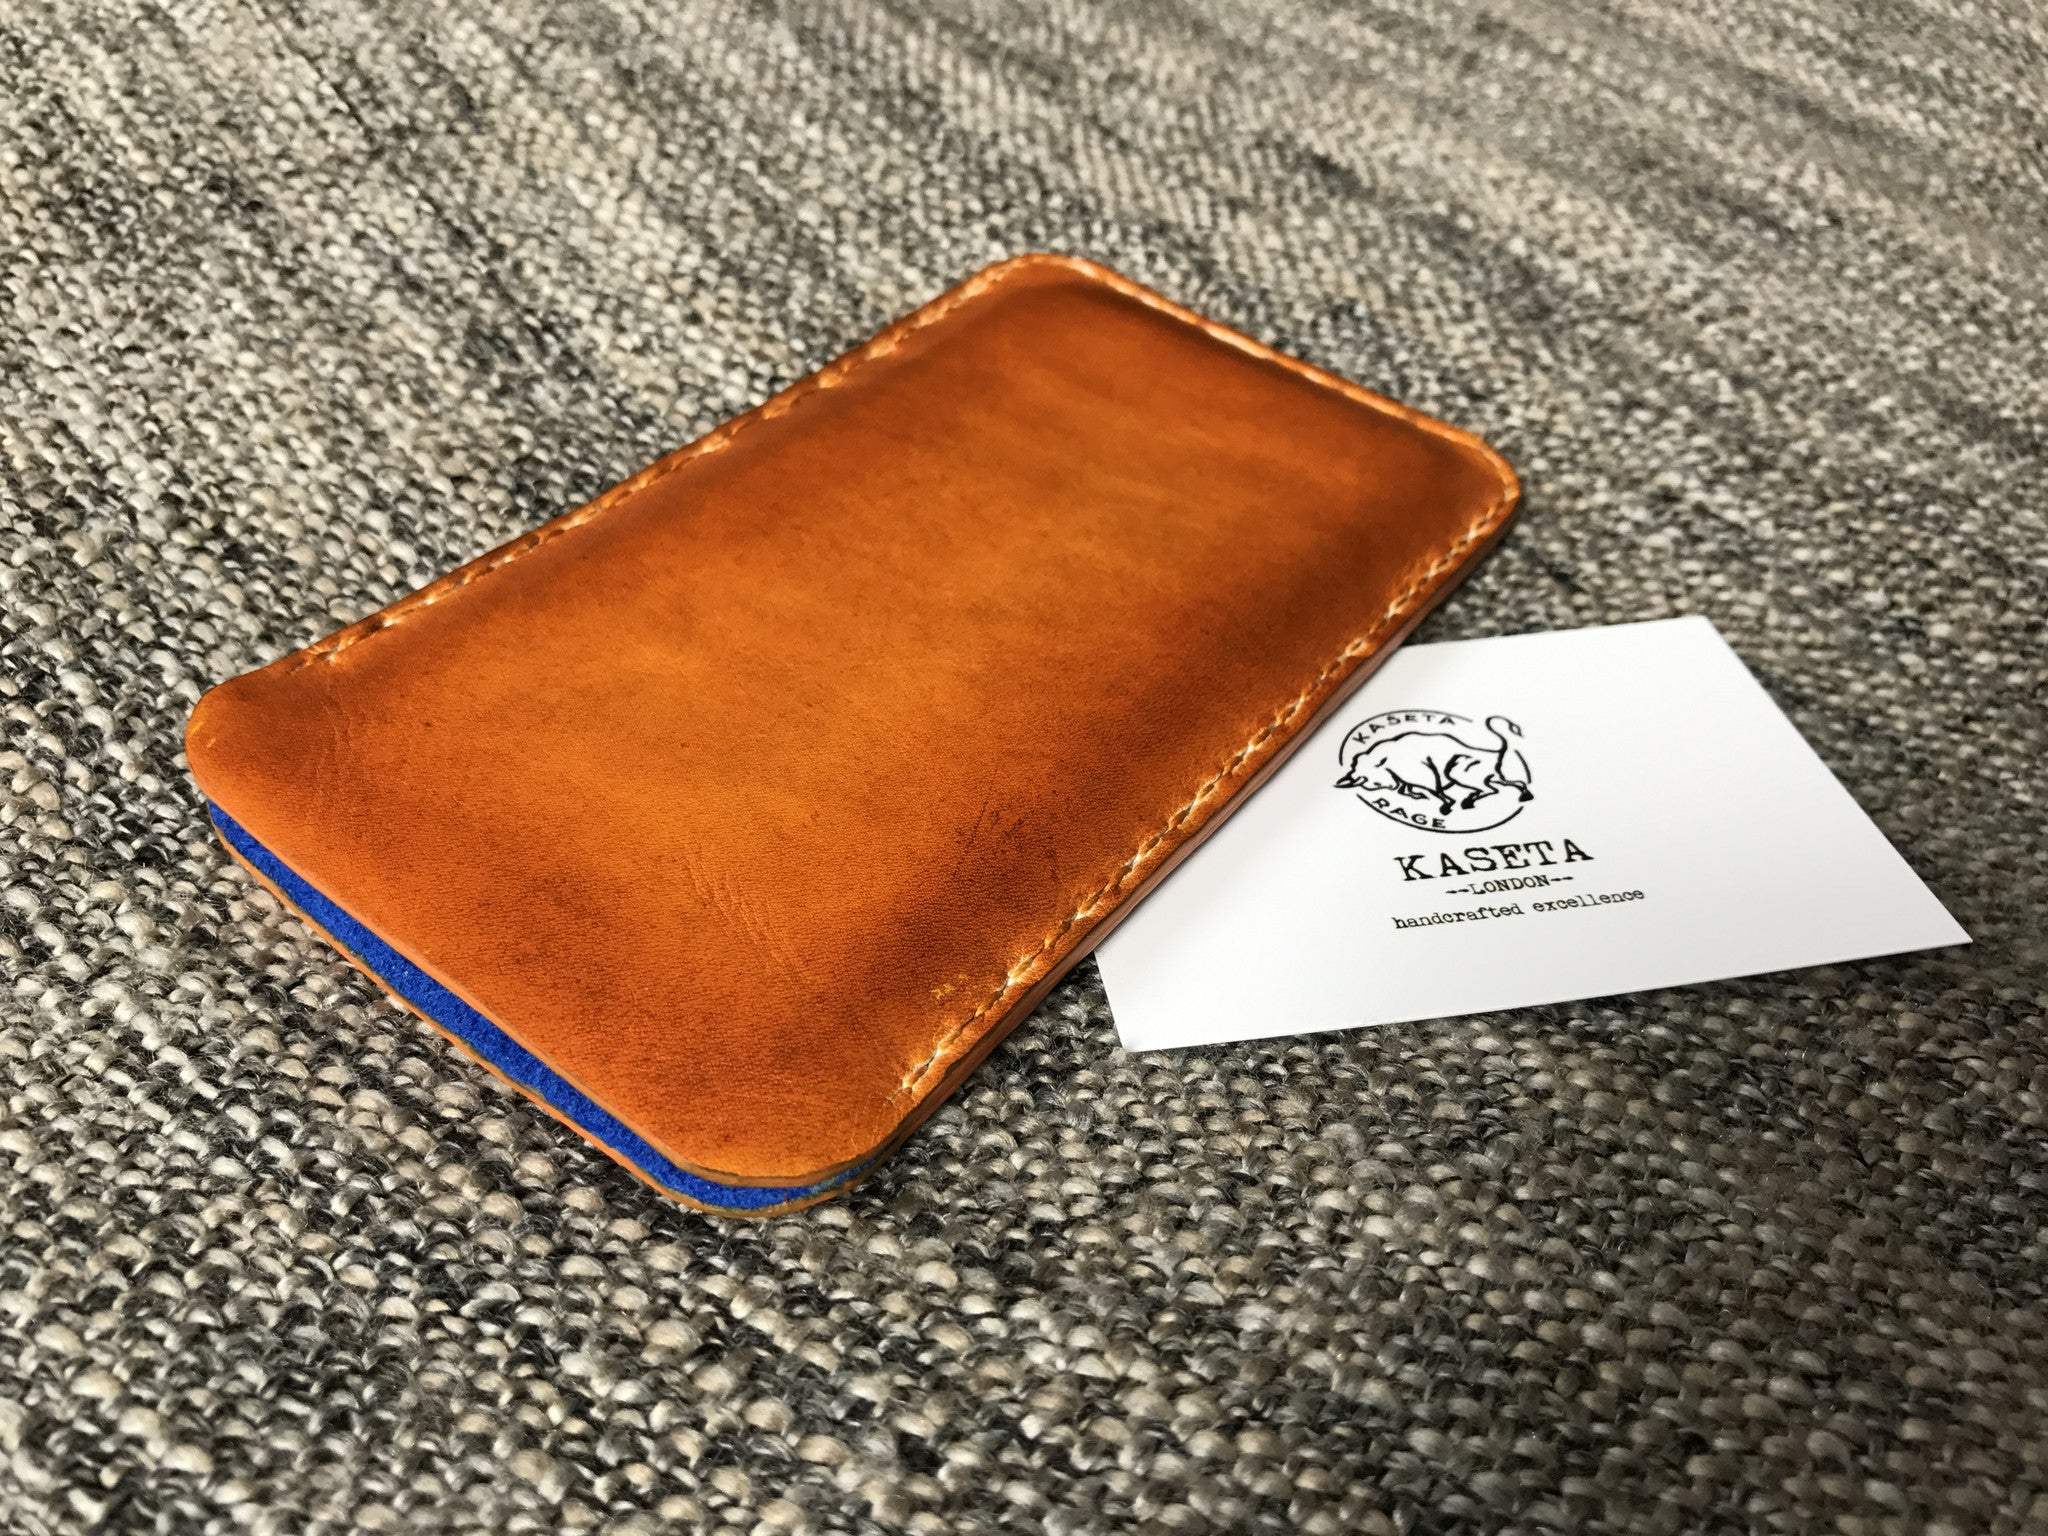 soft leather pouch for iphone, suede to protect  iphone 7